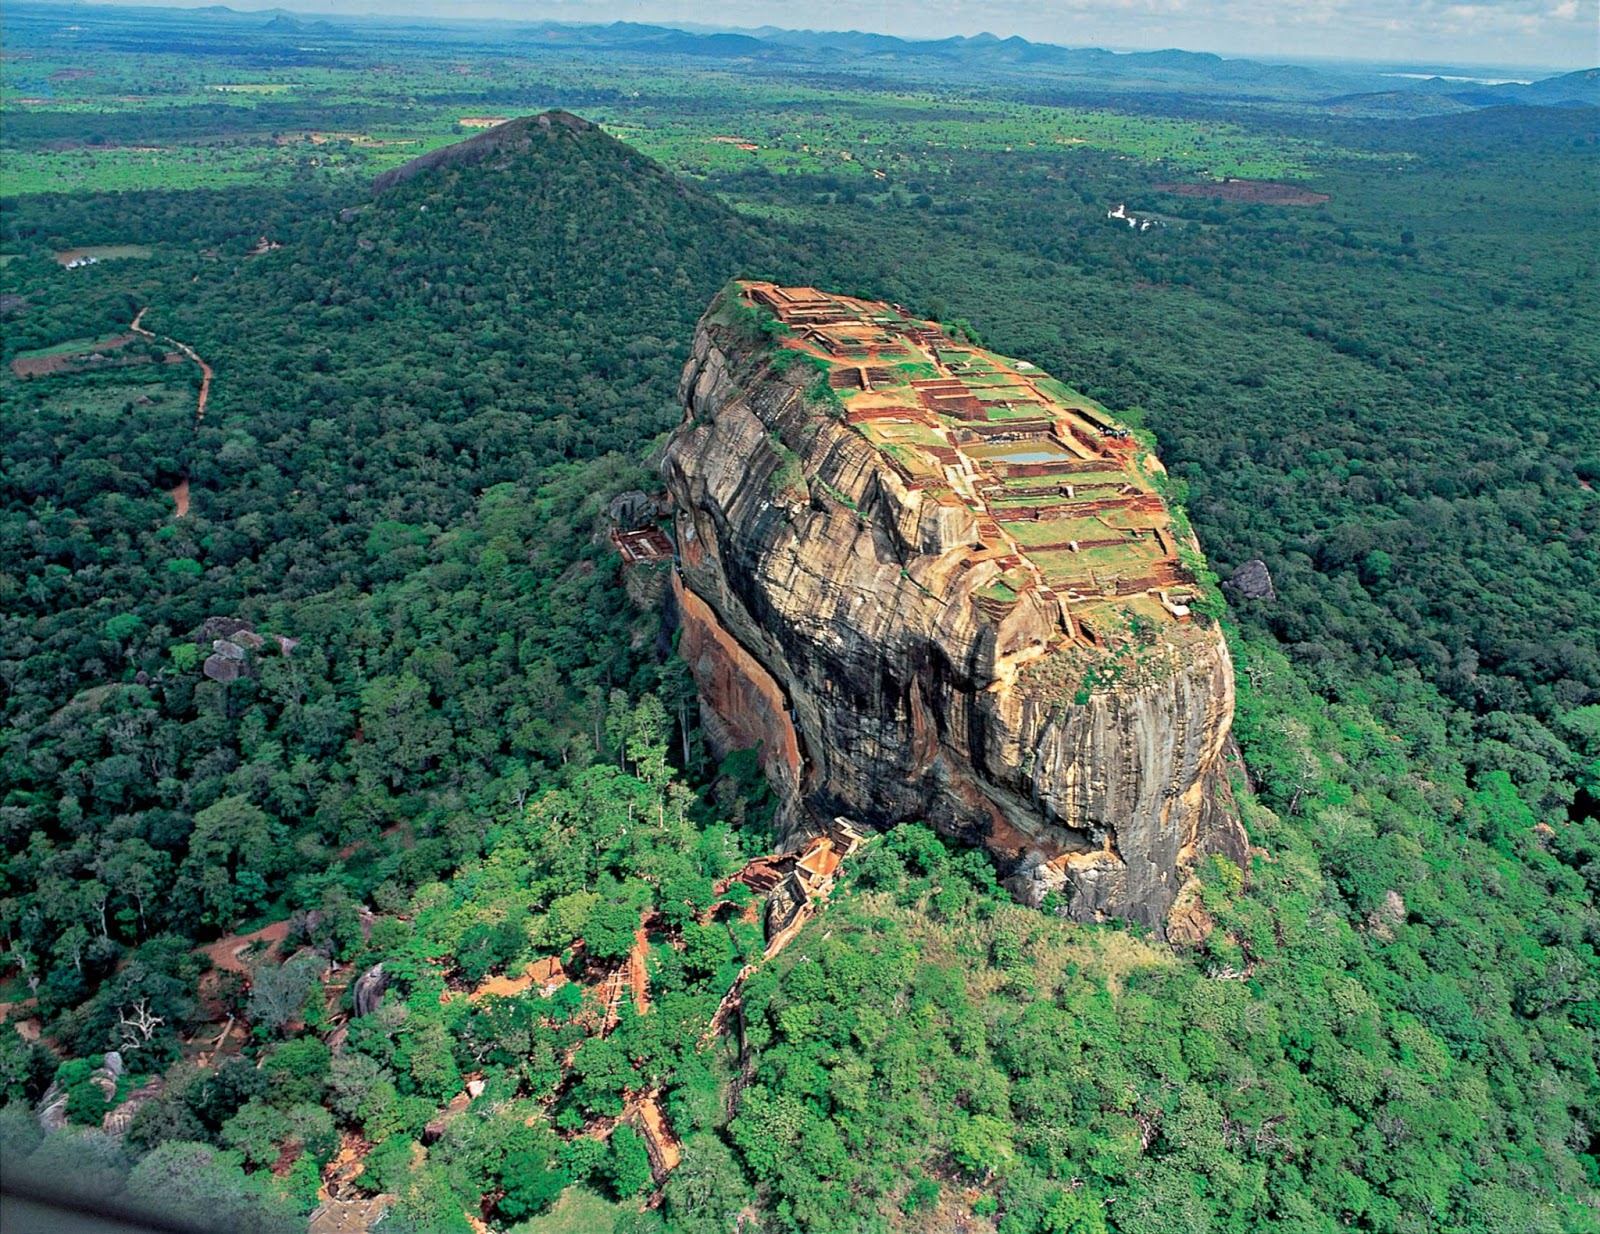 We can't wait to visit Sri Lanka! Tell us about it when you get back.